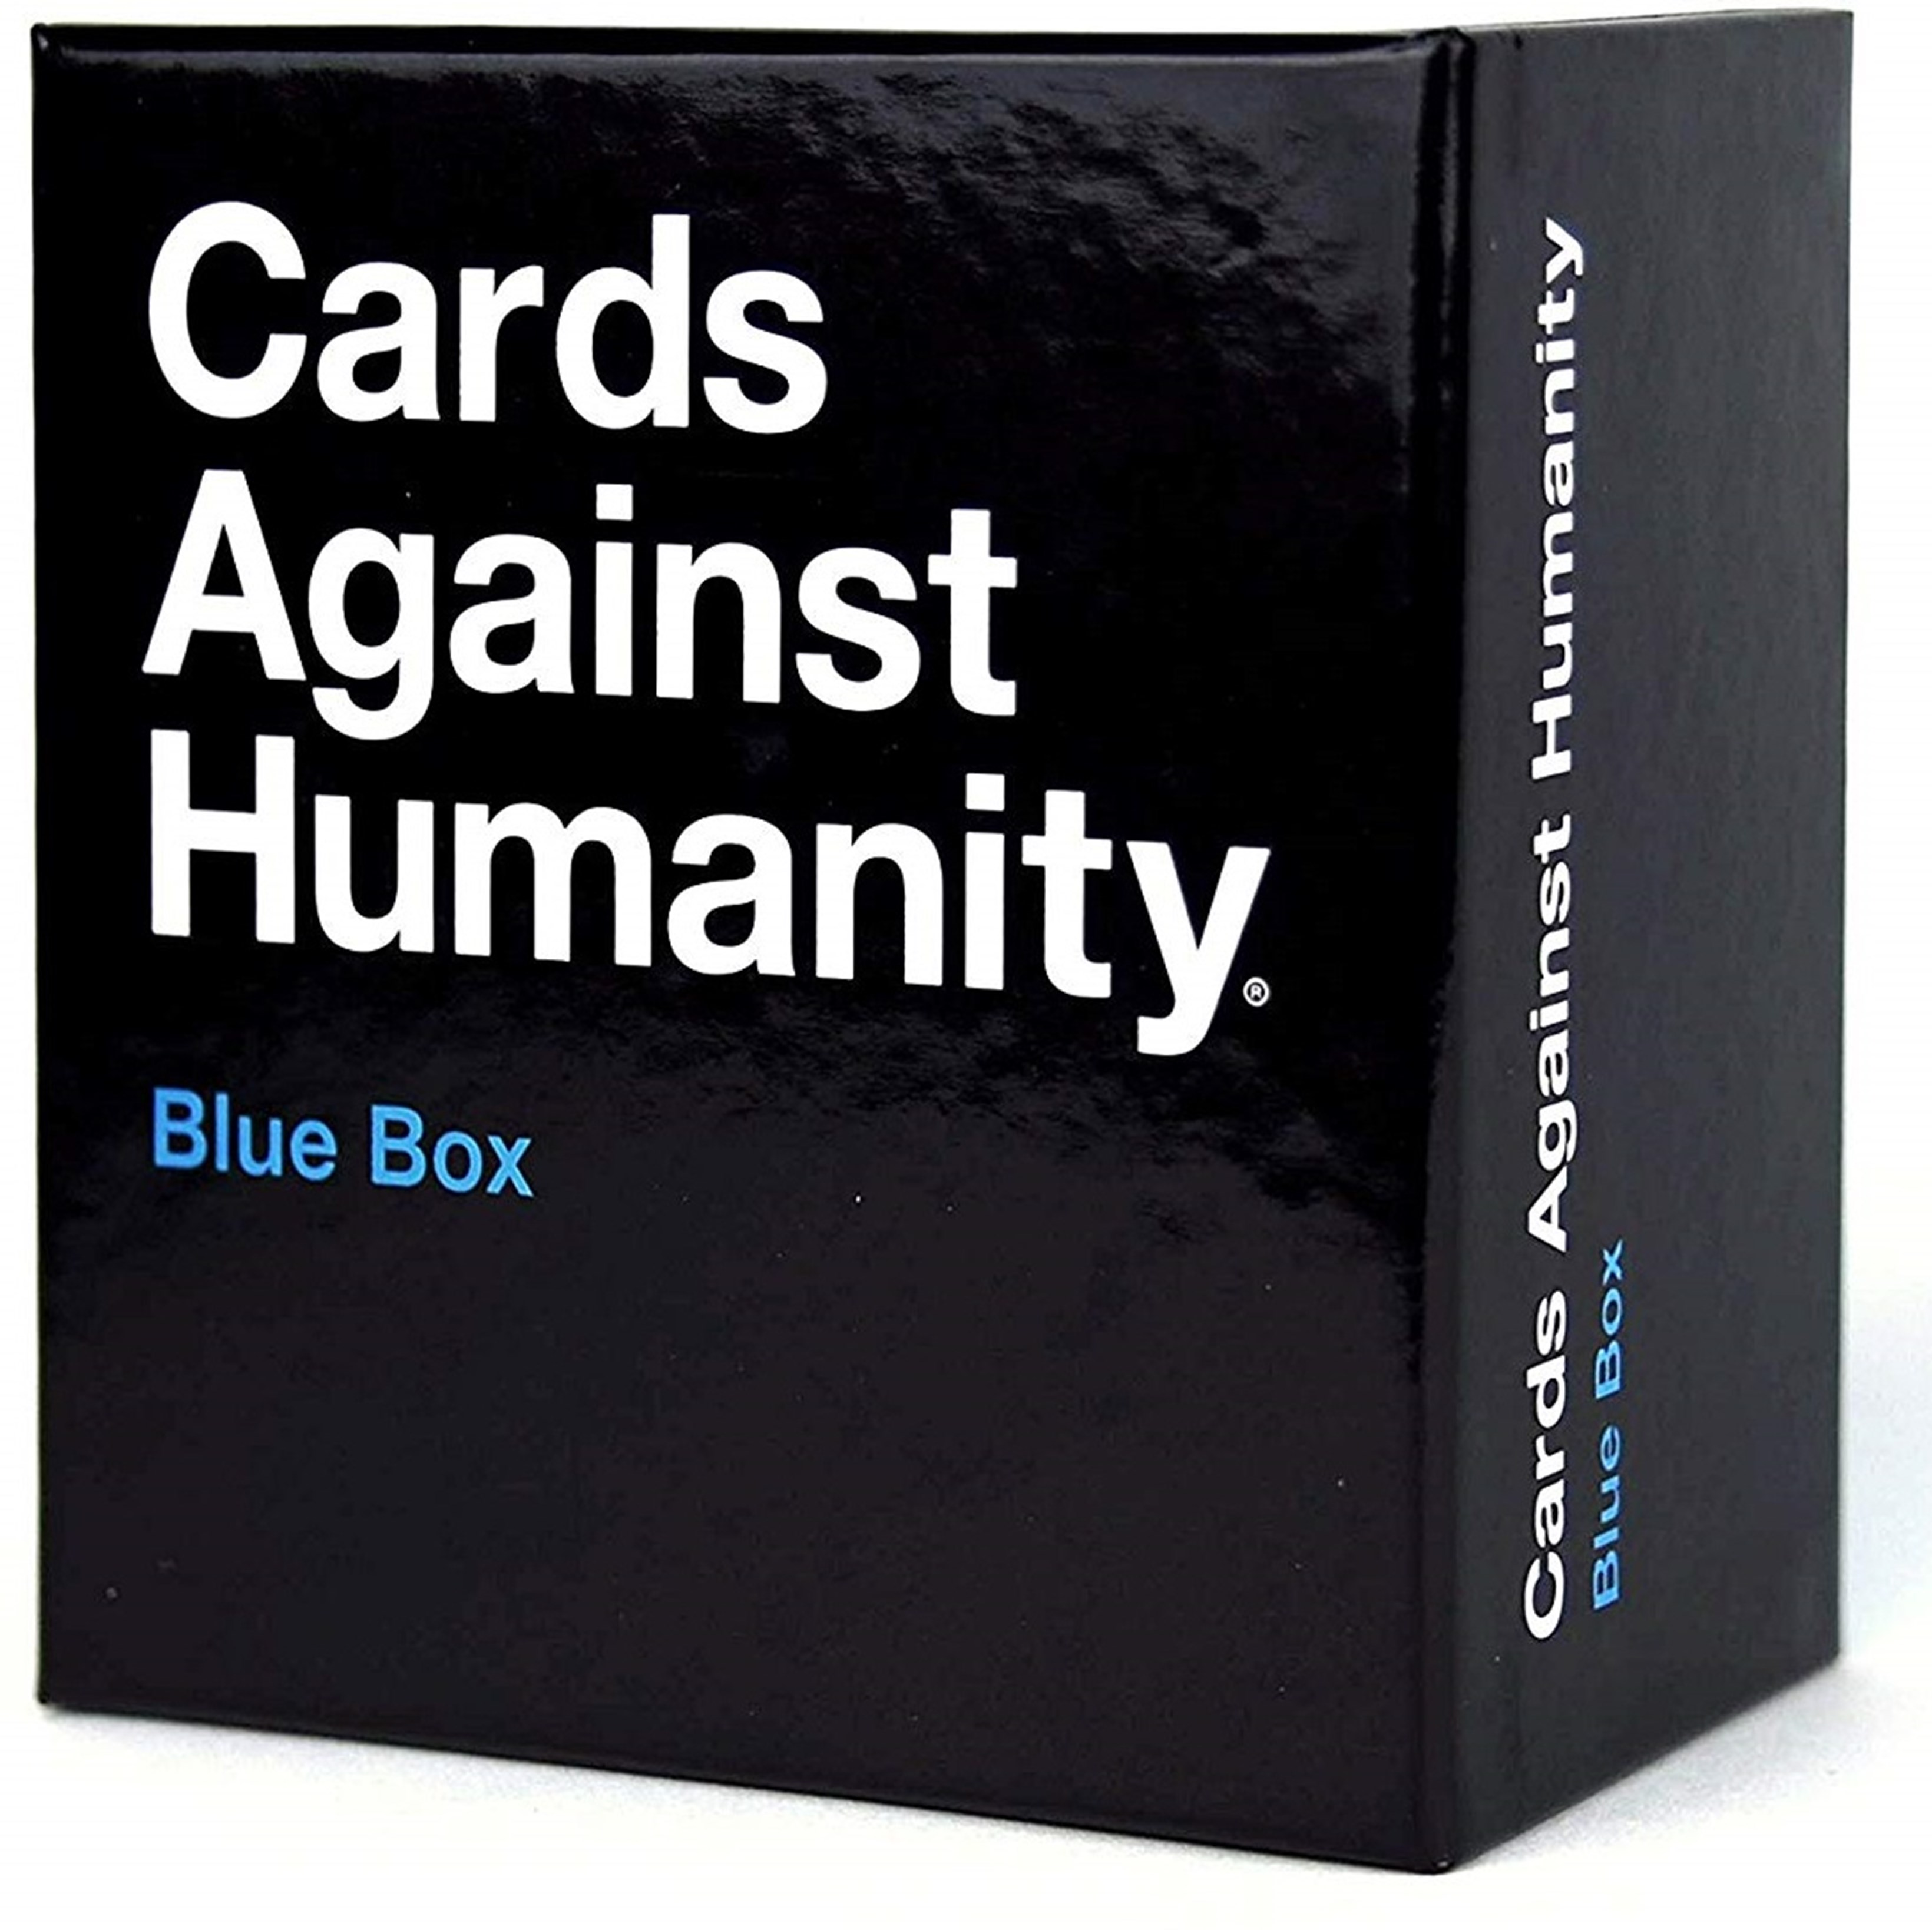 Cards Against Humanity: Blue Box - 1